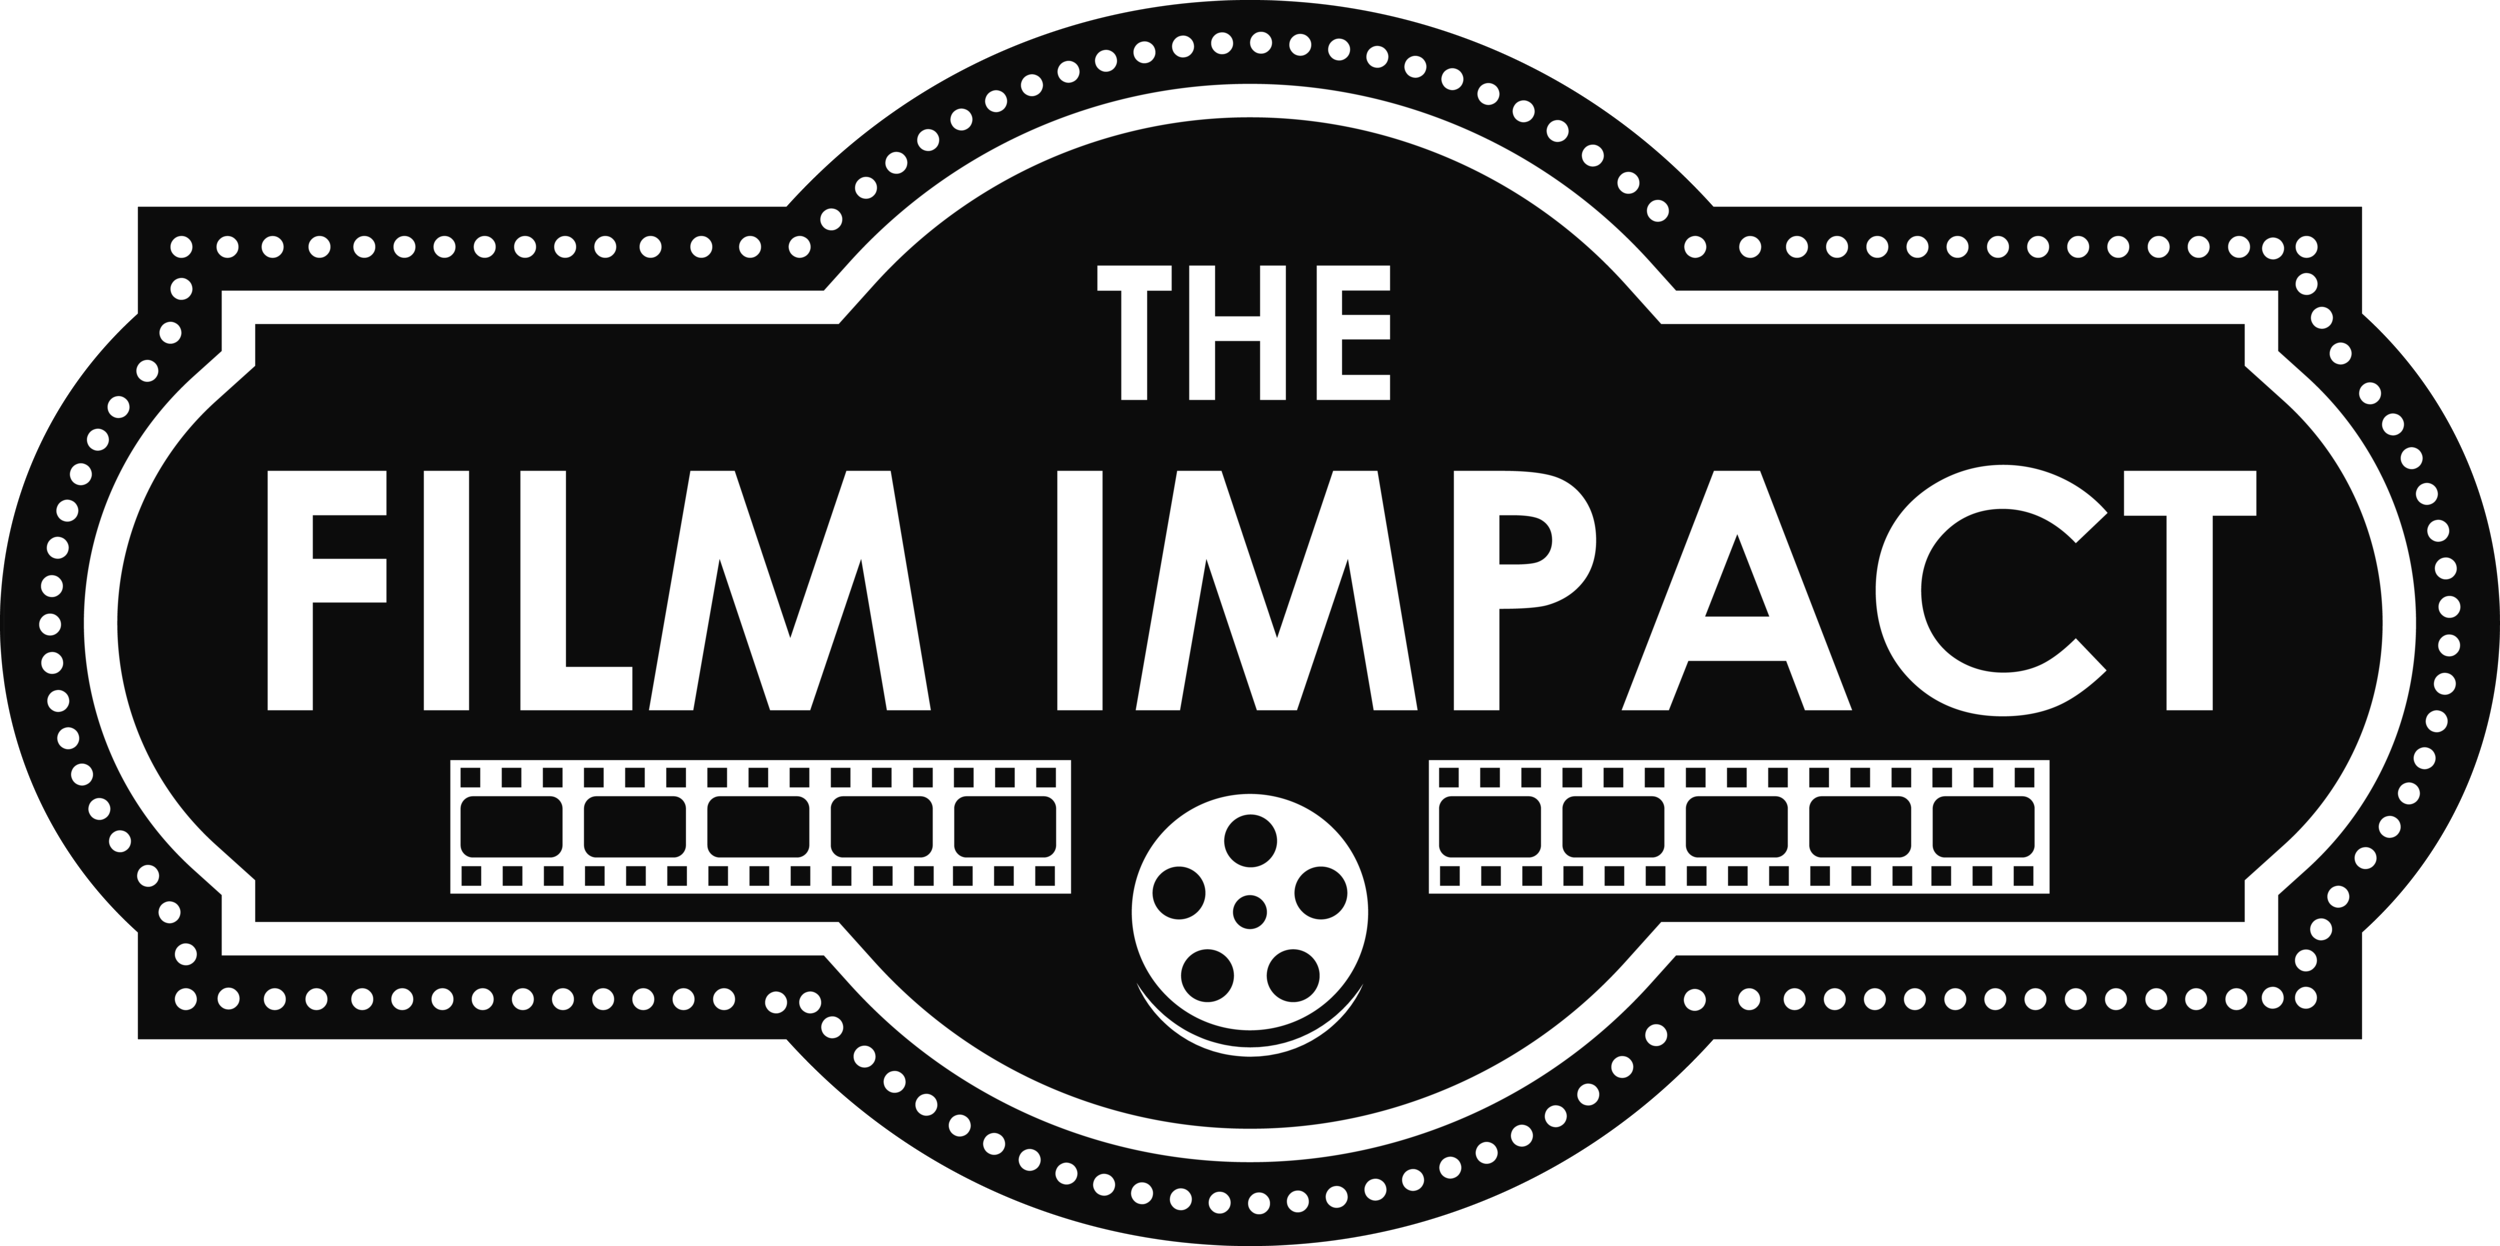 THE FILM IMPACT 4K.png